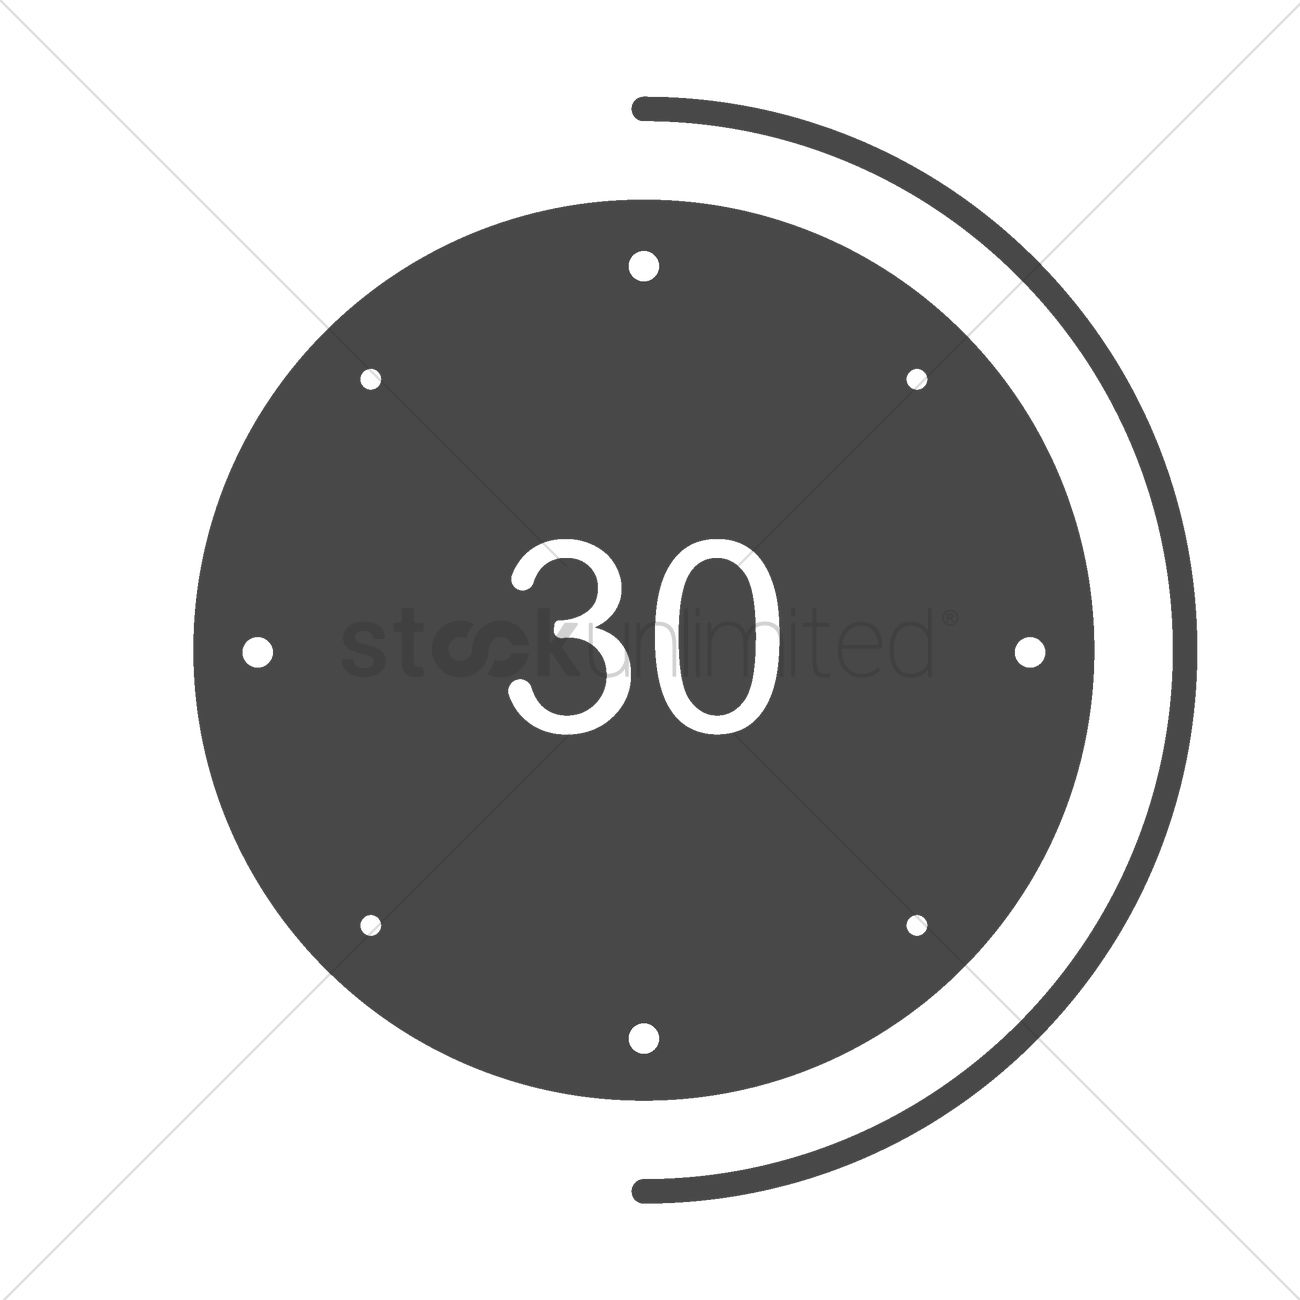 30 seconds icon vector image 2003927 stockunlimited